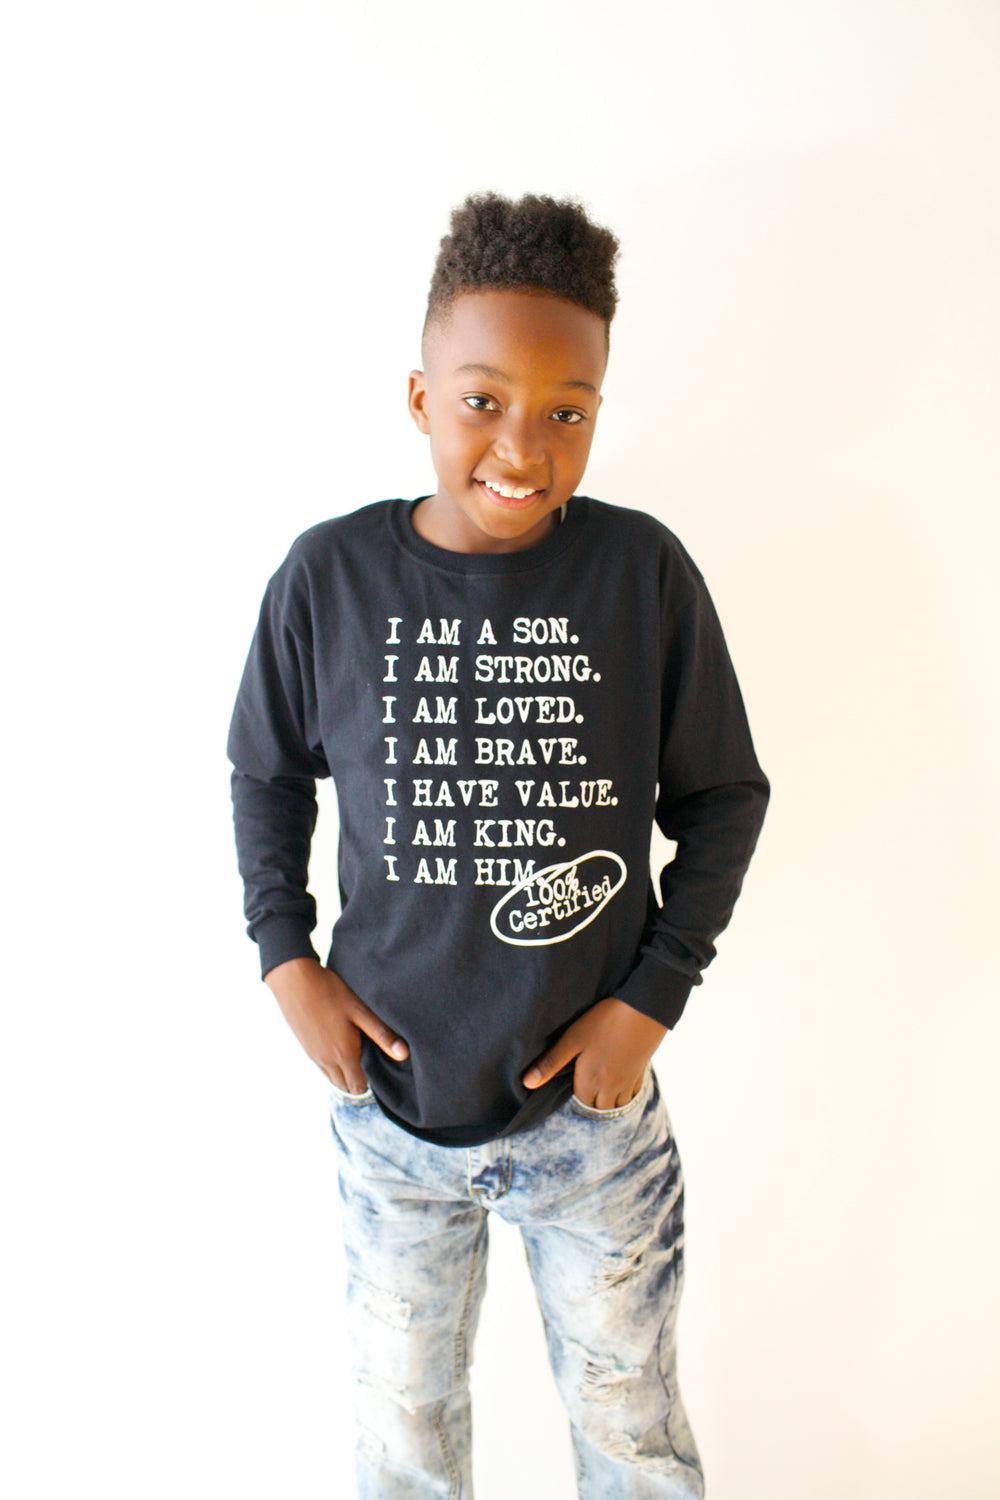 Boy wearing black Longsleeve for boys with saying, I AM A SON. I AM STRONG. I AM LOVED. I AM STRONG. I AM BRAVE. I AM VALUED. I AM KING. I AM HIM -­‐ 100% CERTIFIED. Boys clothing for him because it is never too early or too late for him to know his value and worth.